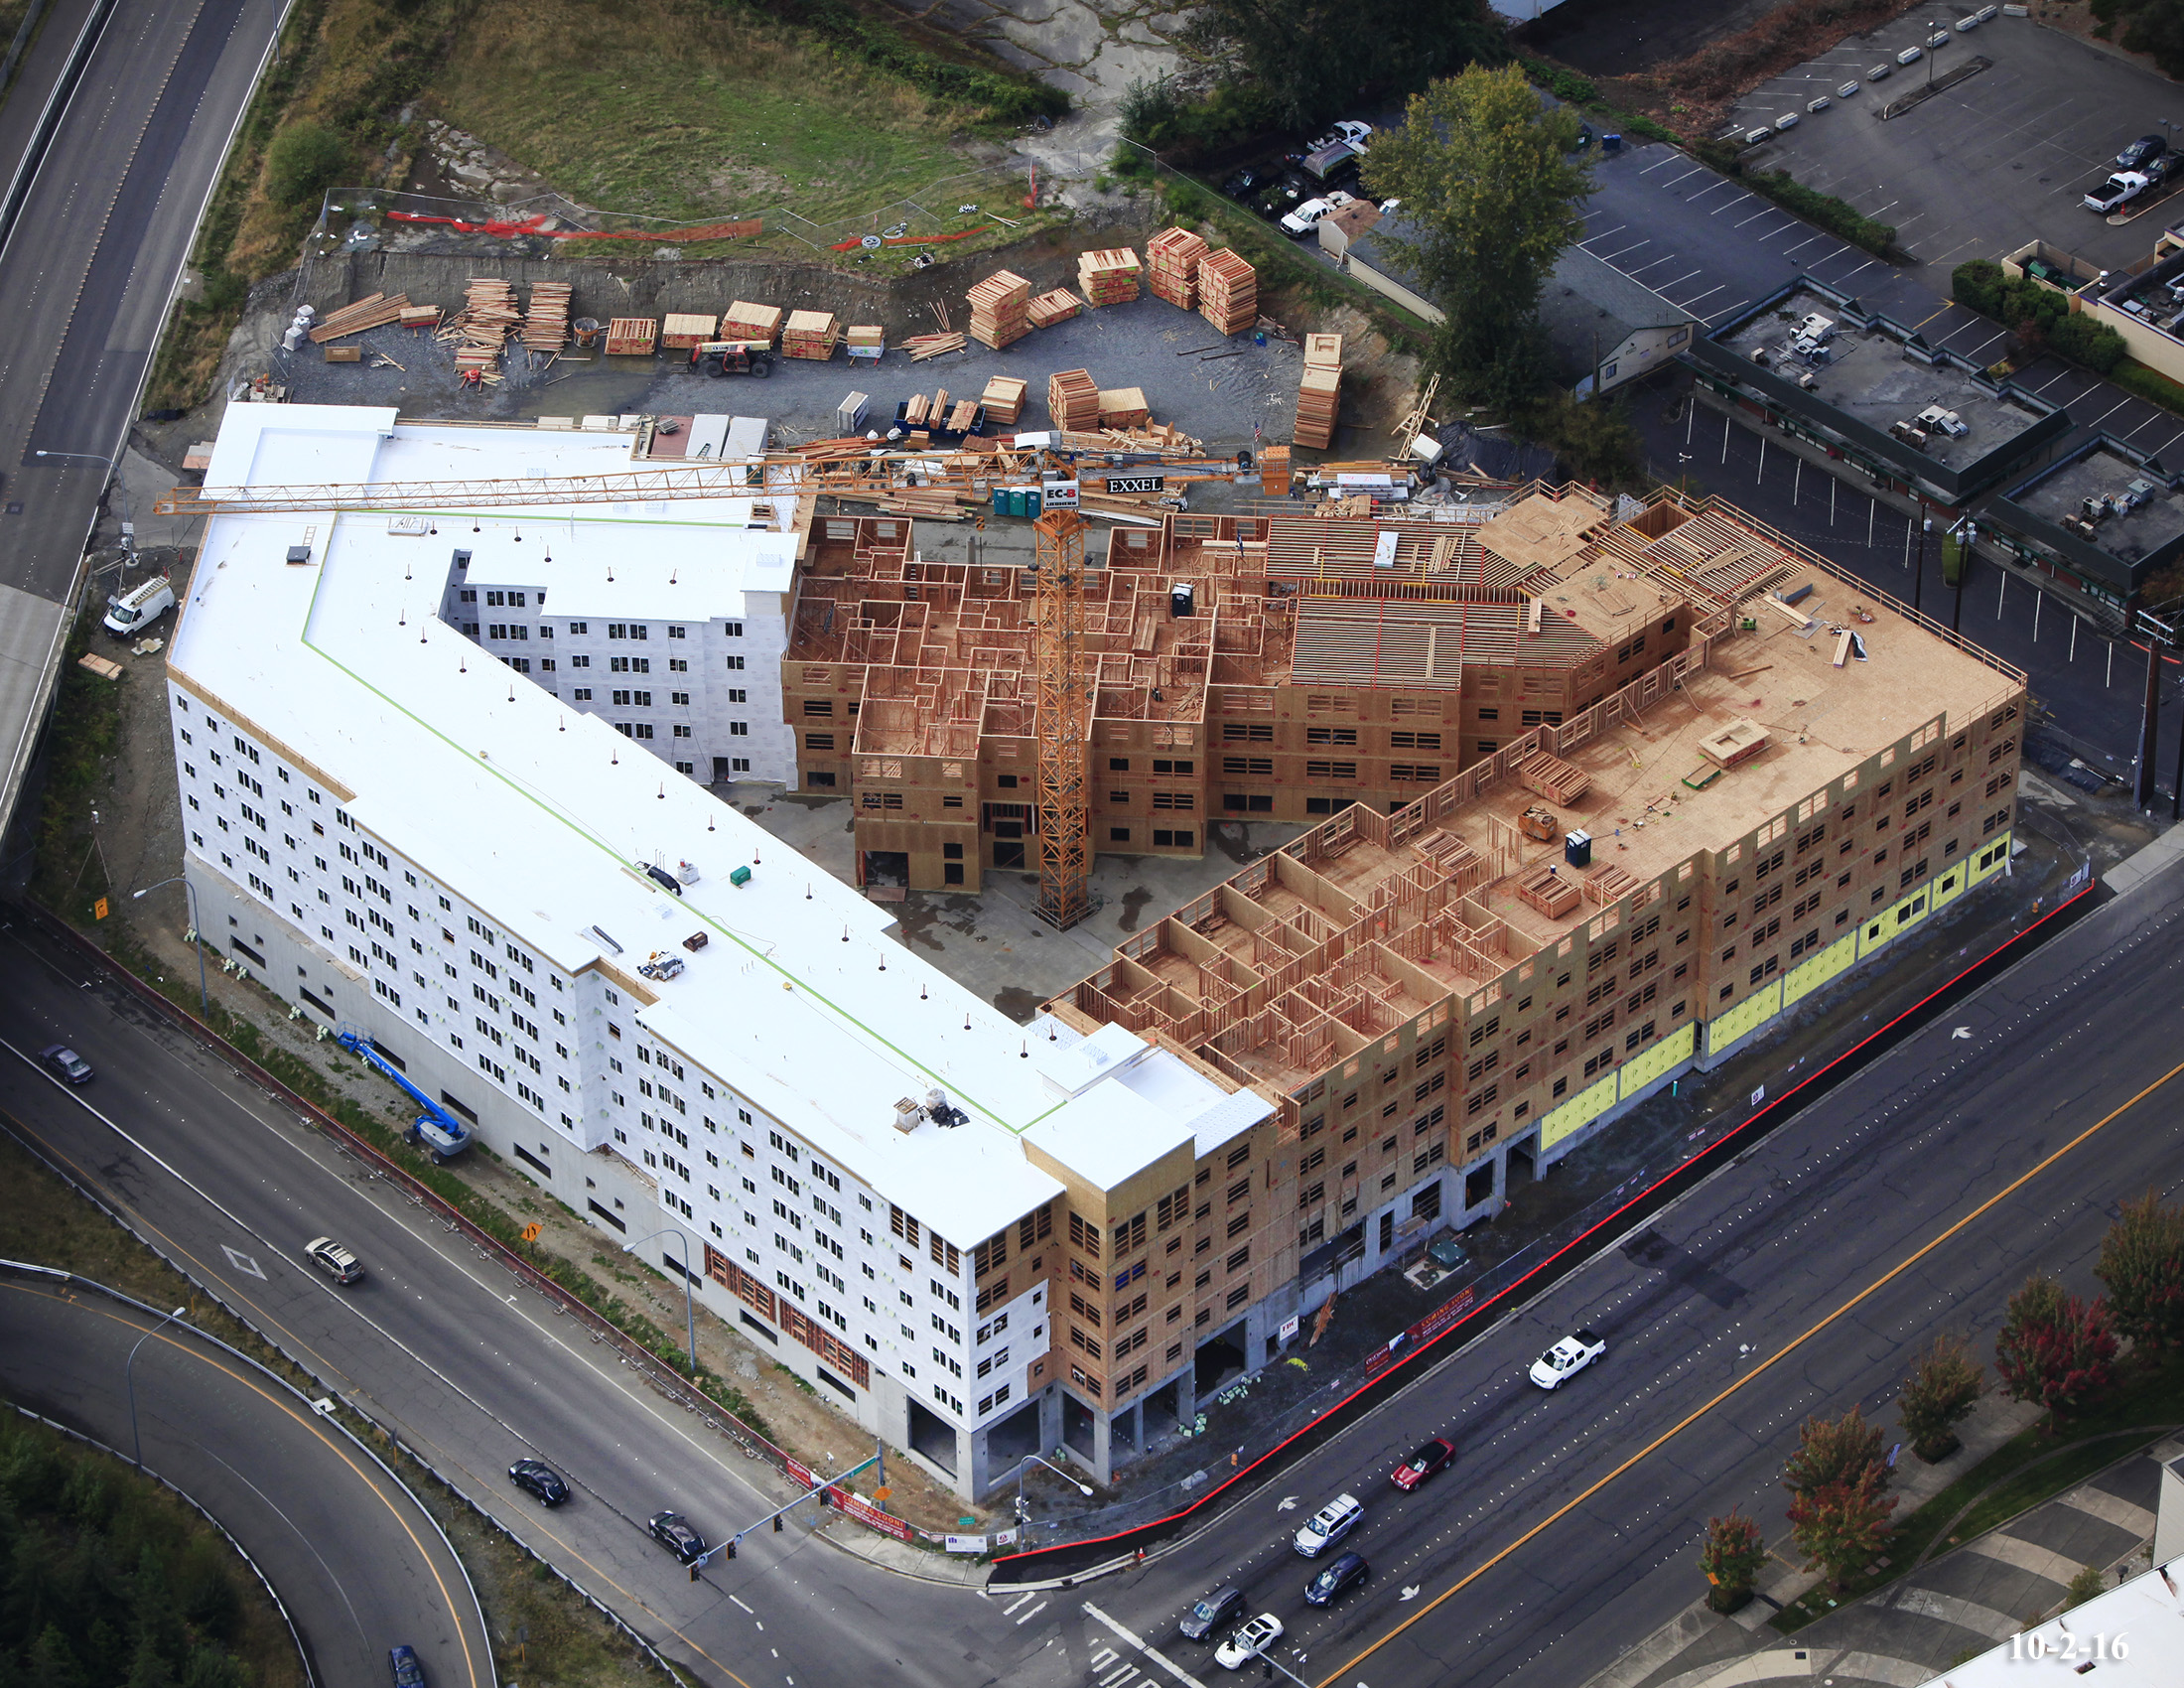 Construction of City Center Apartments in Lynwood